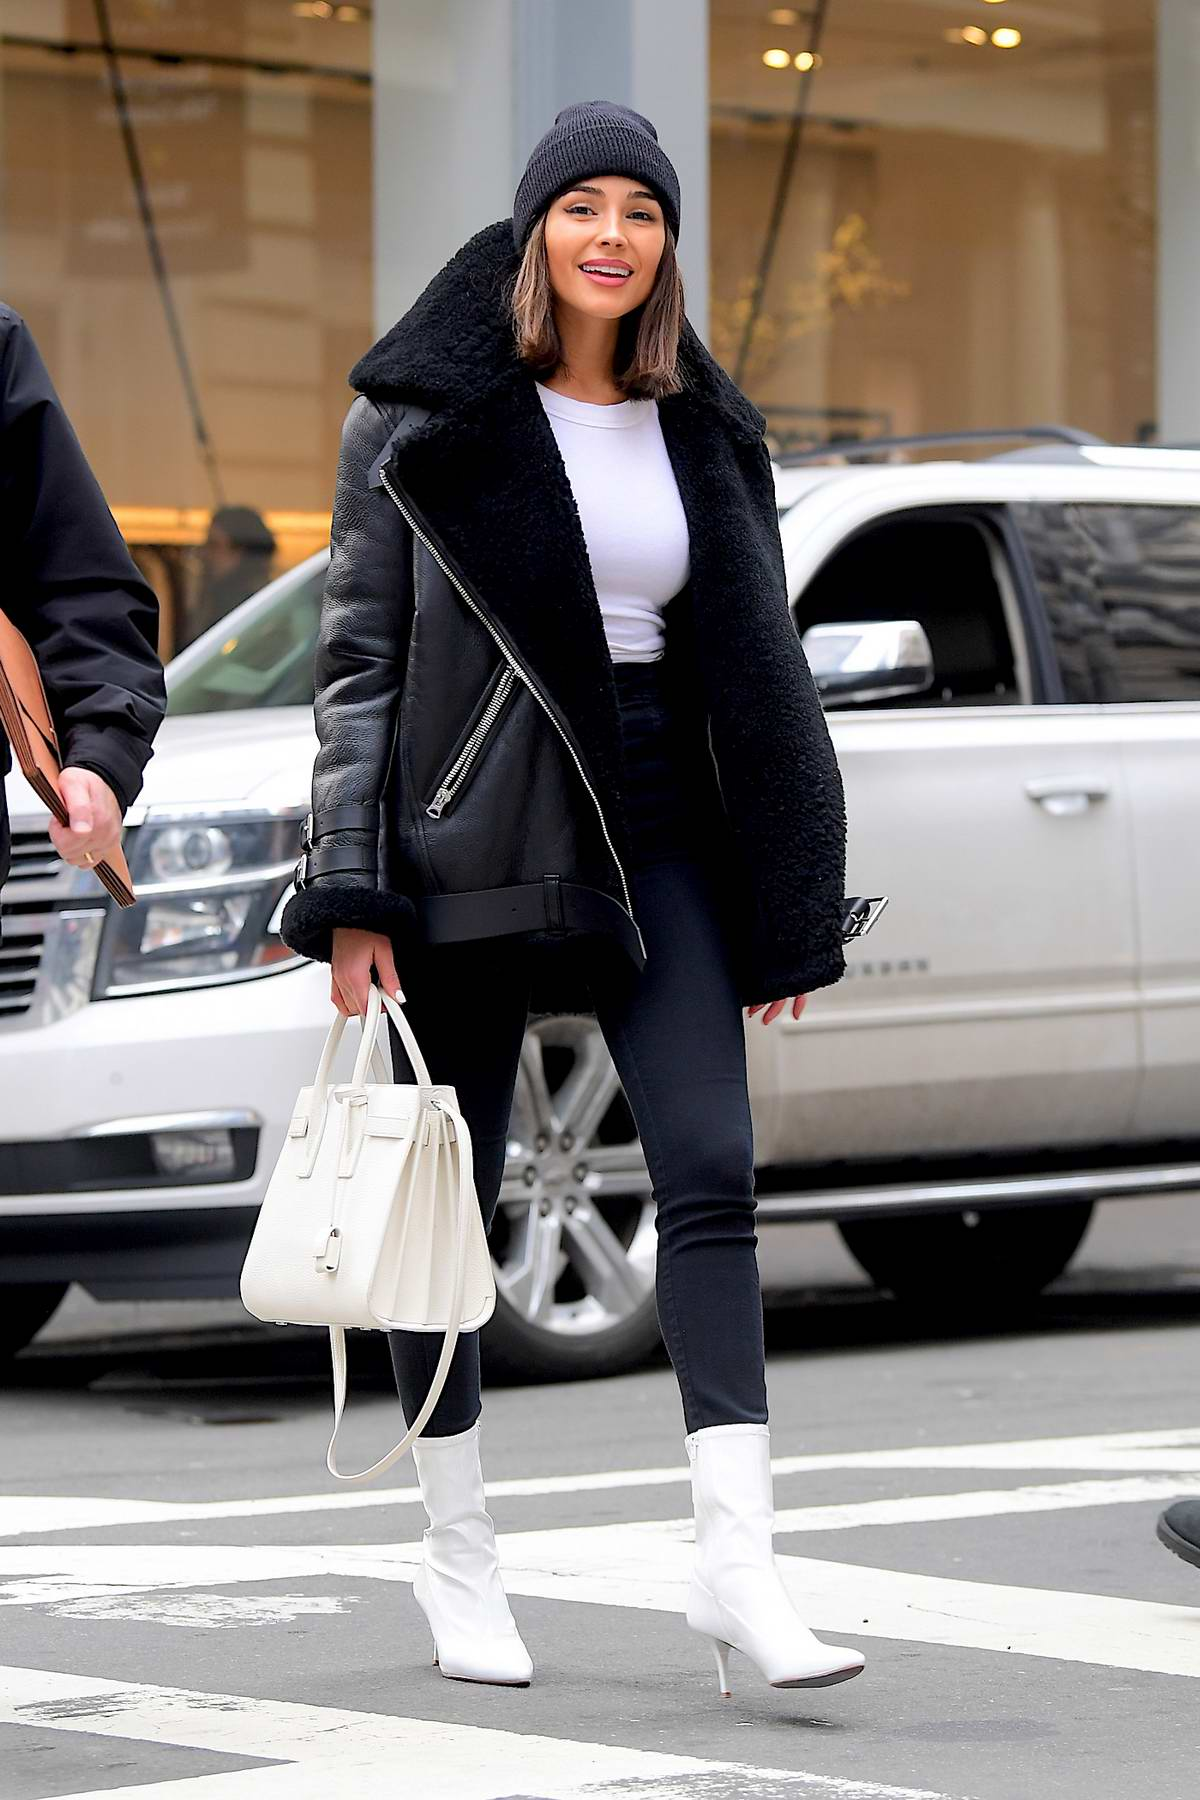 Olivia Culpo spotted out with a friend shopping at Alexander Wang in Soho, New York City